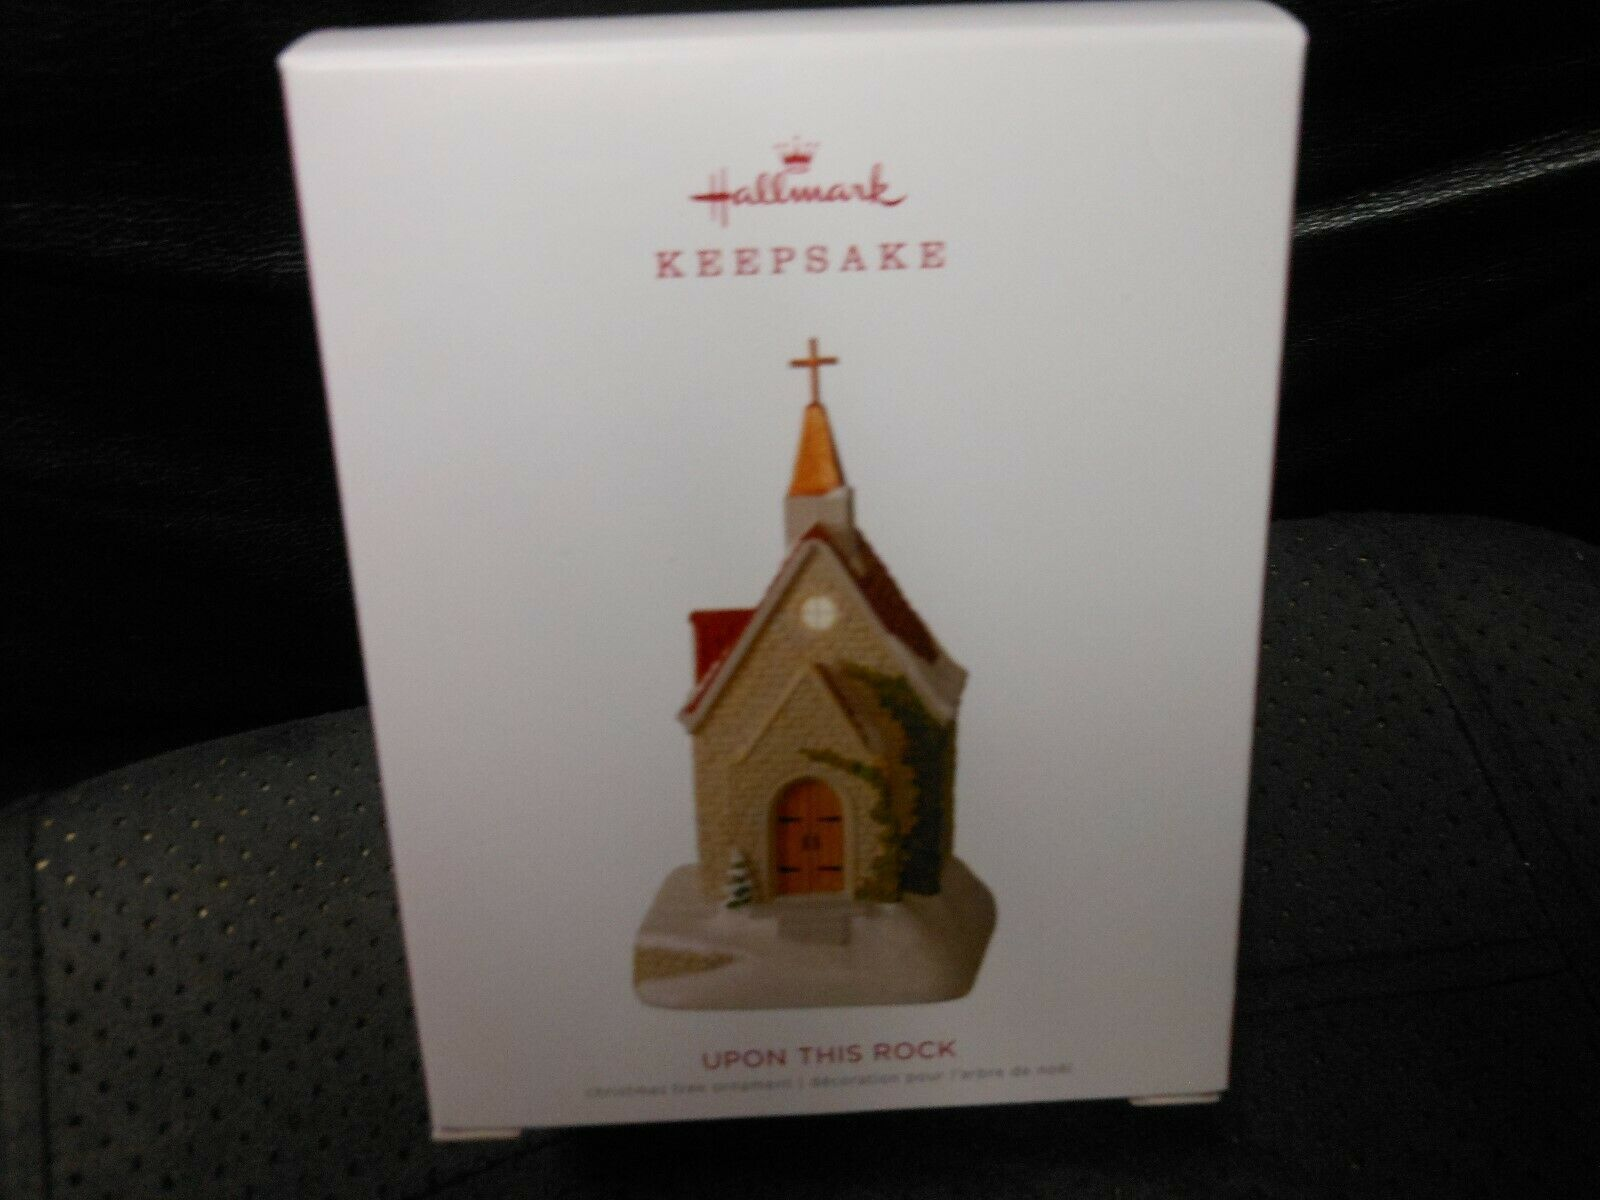 "Hallmark Keepsake ""Upon This Rock"" 2018 Ornament NEW"